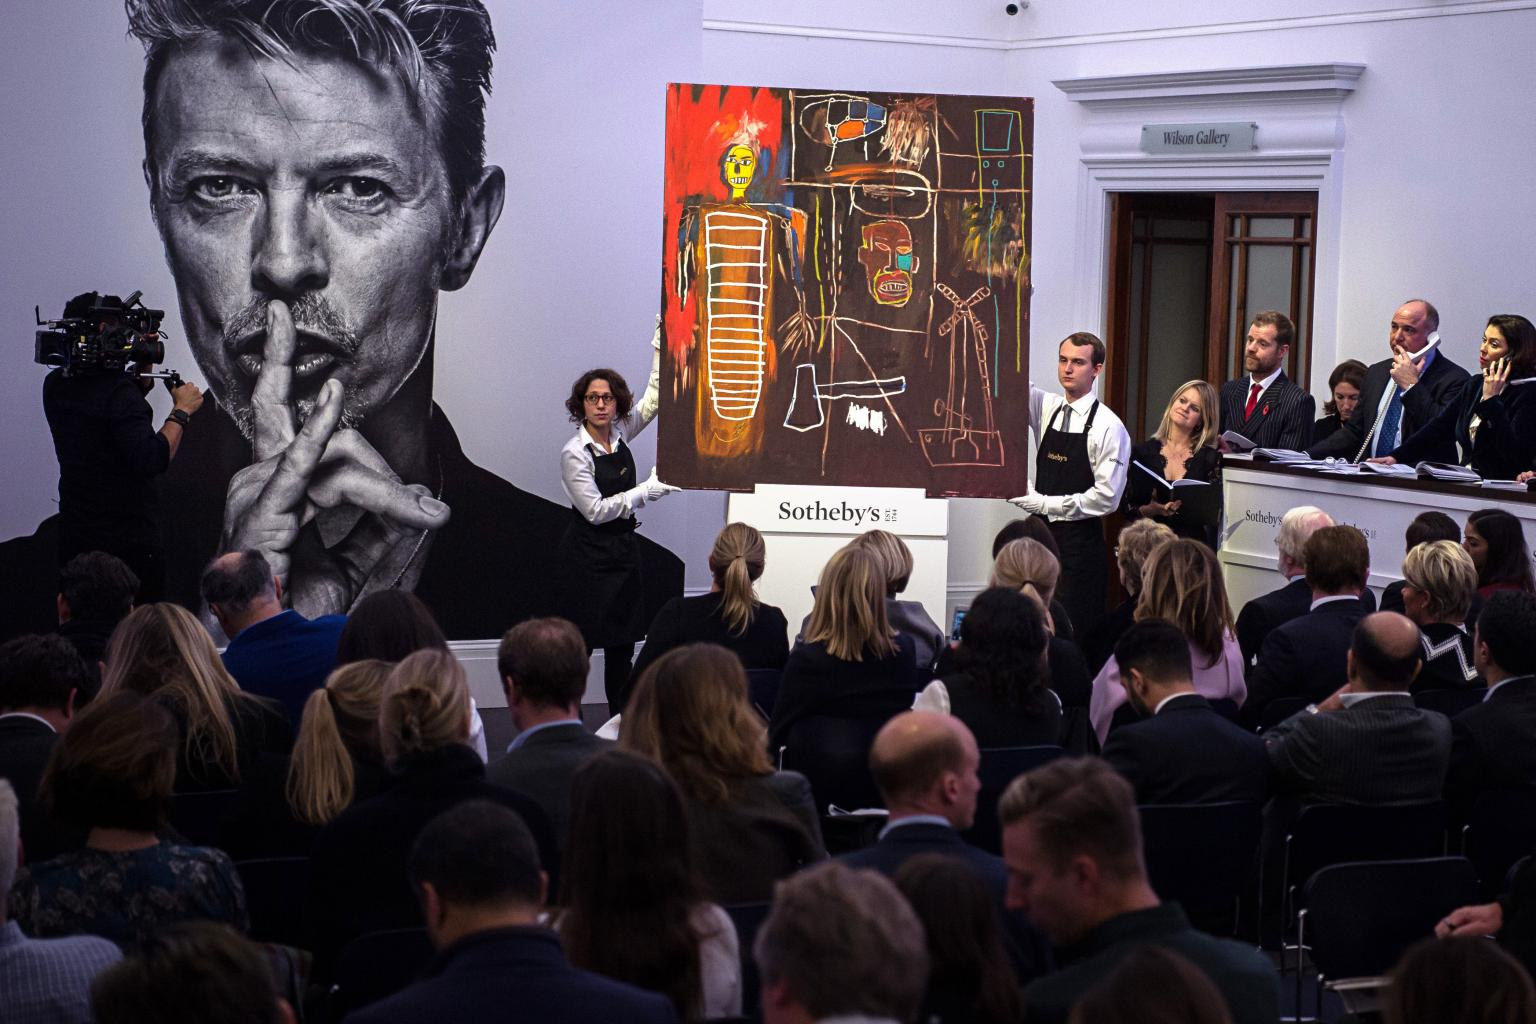 David Bowie Art Auction Nets $30.3 Million, Smashing Projected First-Day Sales